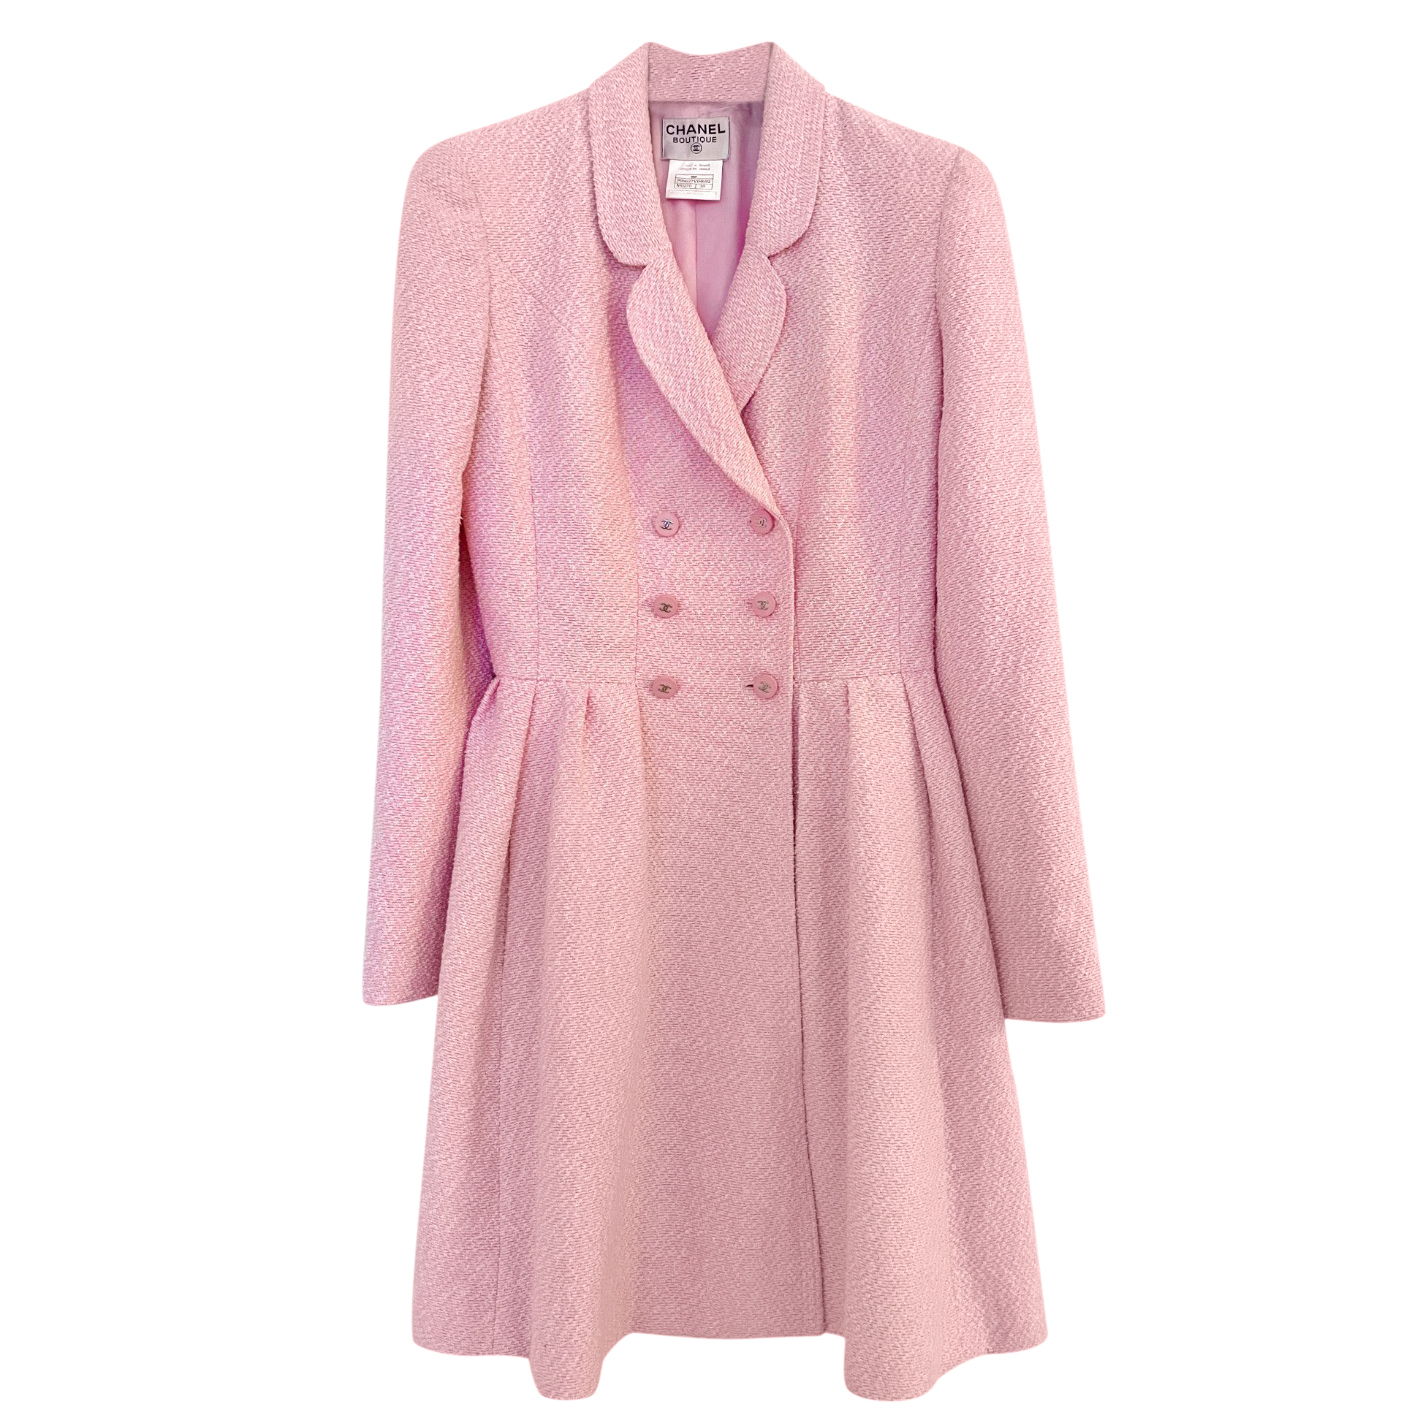 Chanel Pale Pink Vintage Double Breasted Longline Jacket